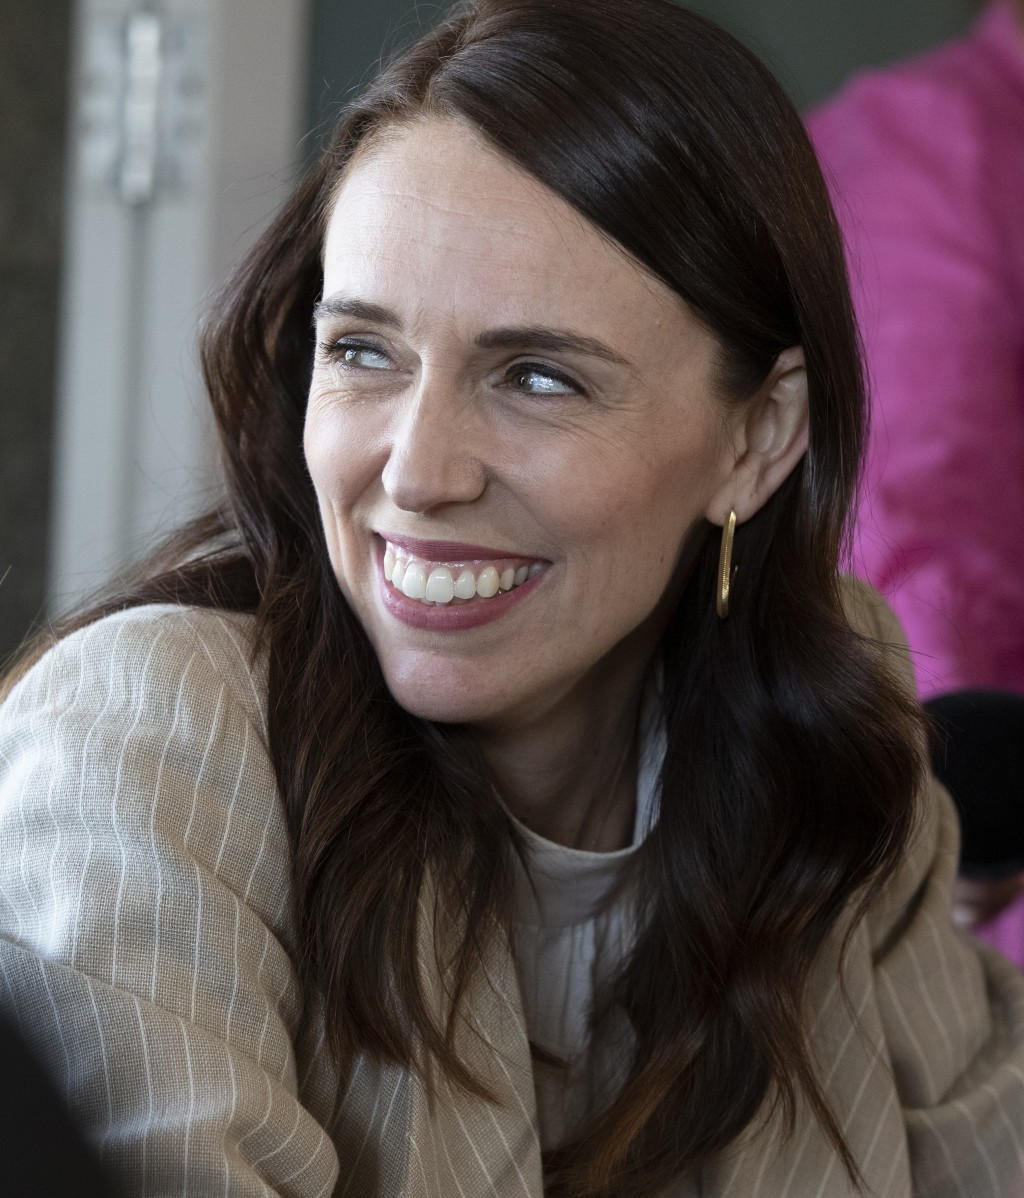 New Zealand Prime Minister Jacinda Ardern reacts as she talks with colleagues at a cafe in Auckland, New Zealand, Sunday, Oct. 18, 2020. Ardern has wo...